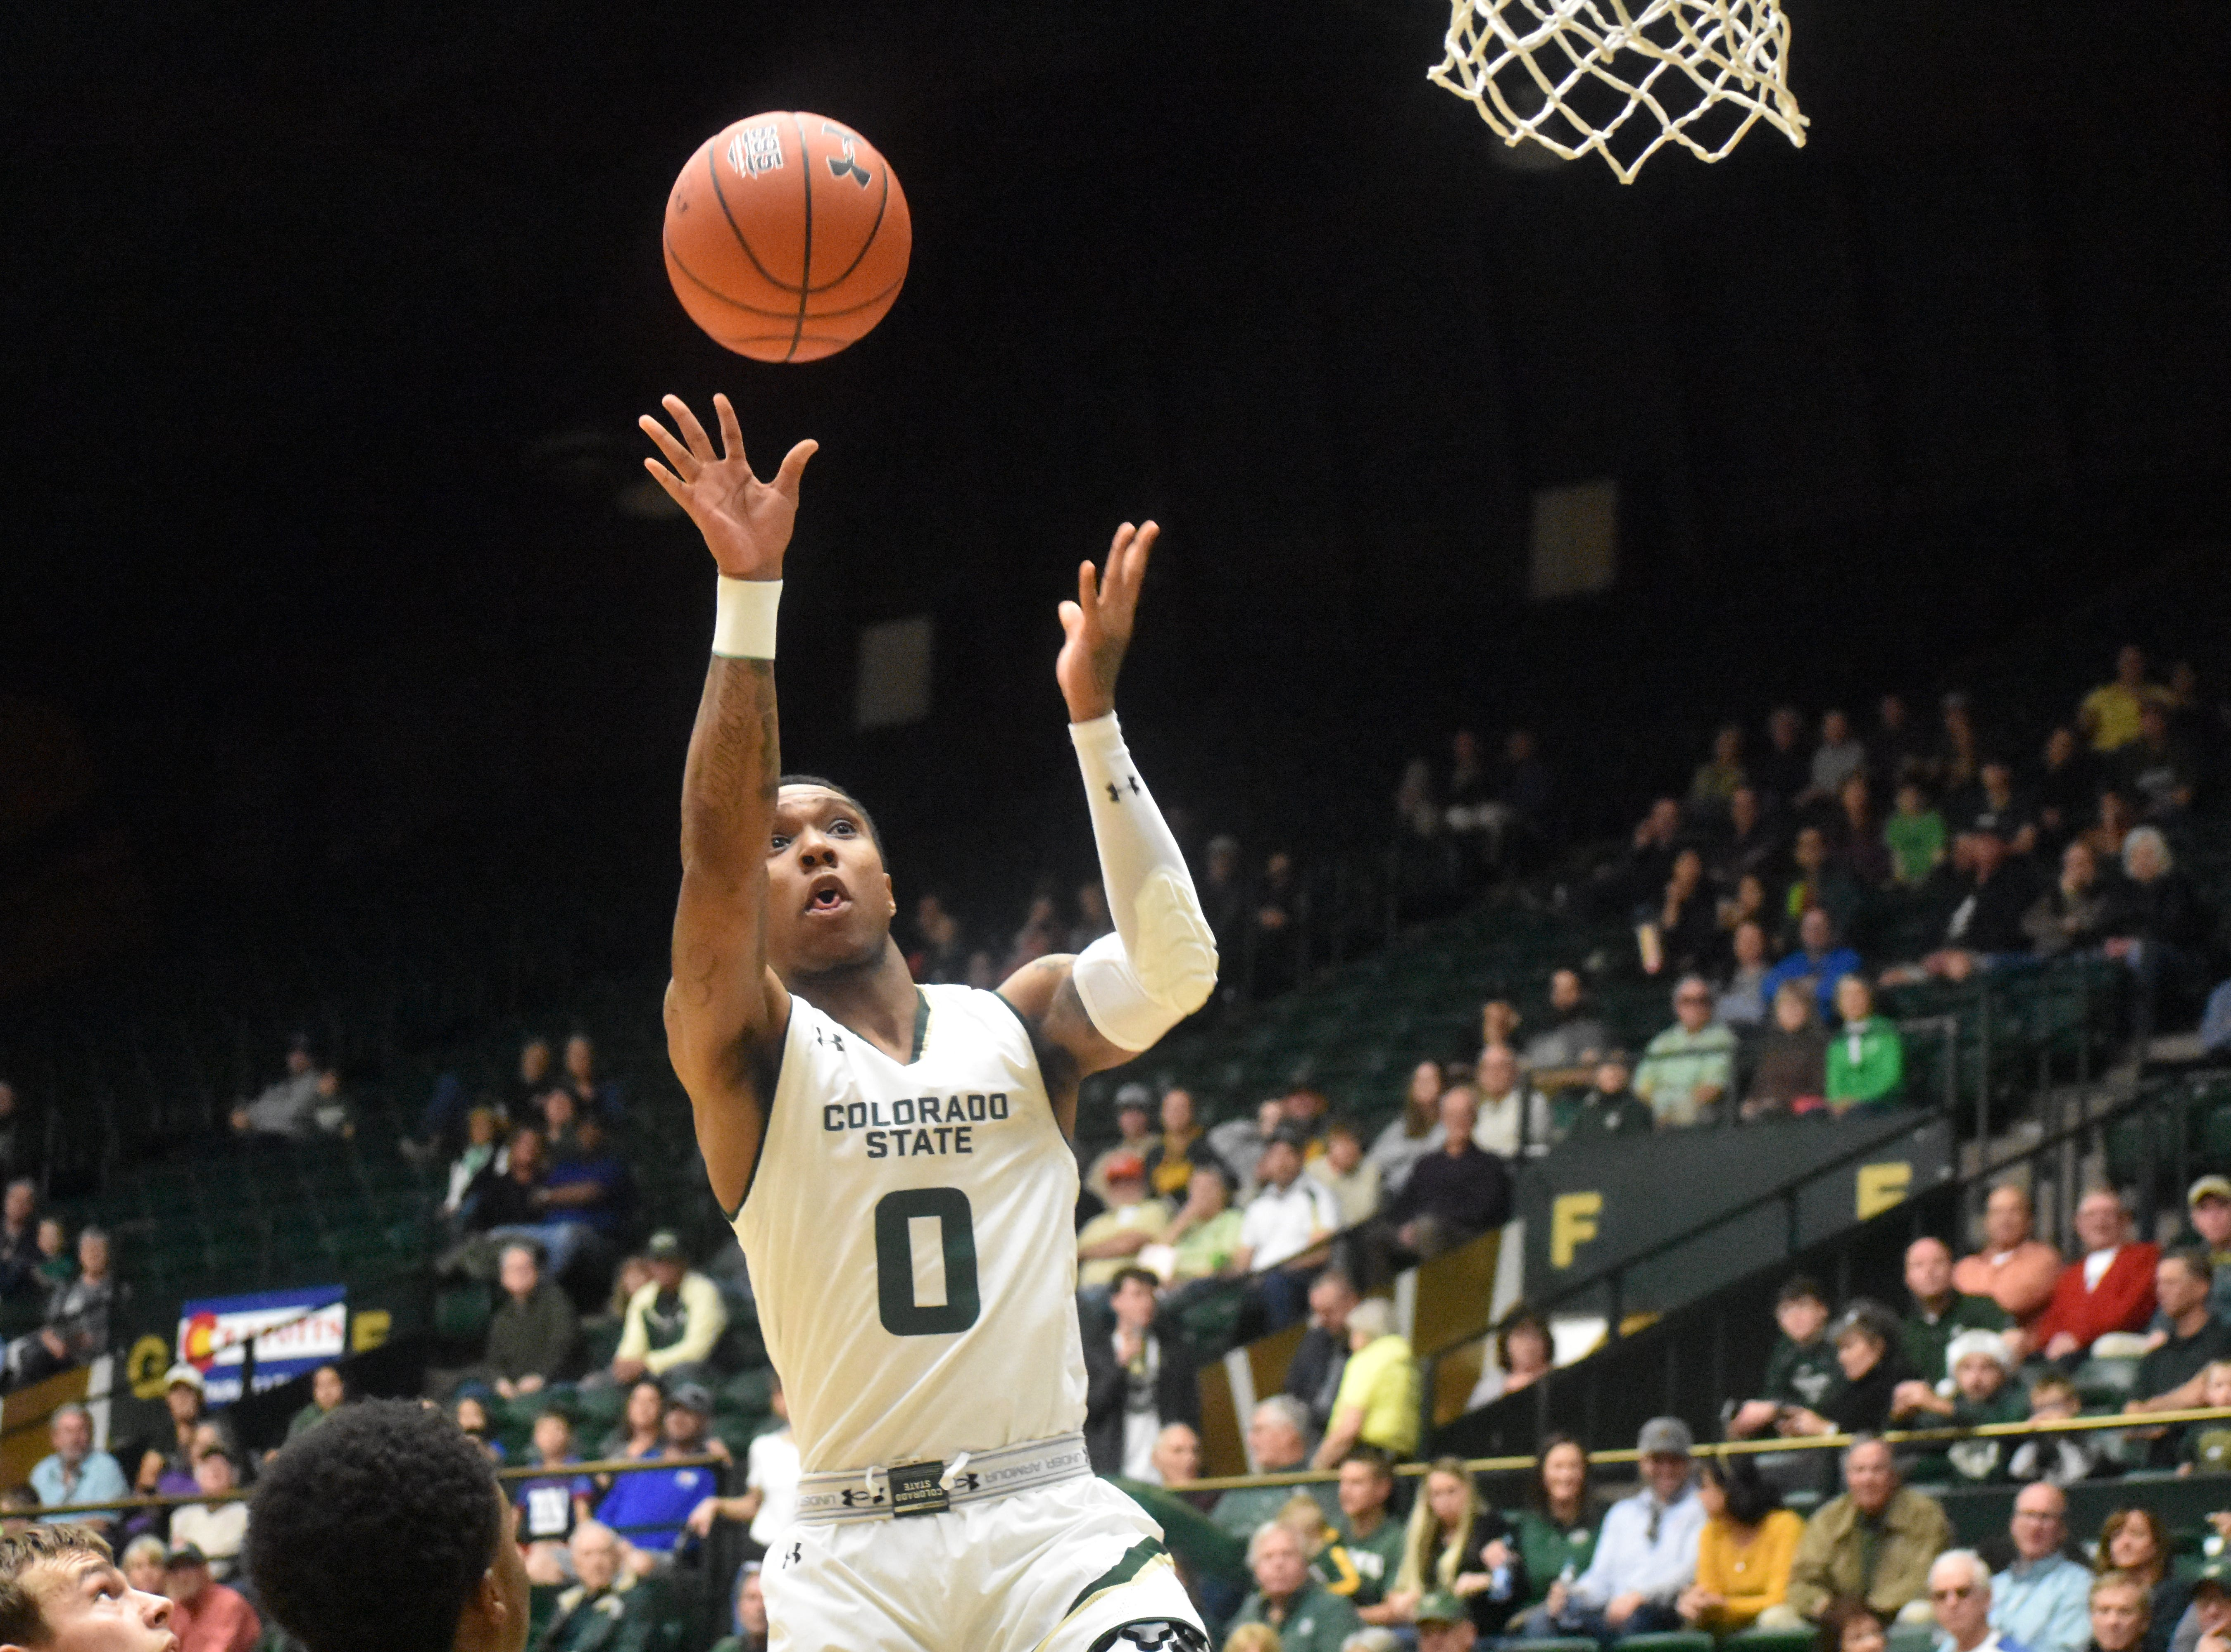 CSU guard Hyron Edwards attempts a shot against South Dakota on Sunday at Moby Arena.